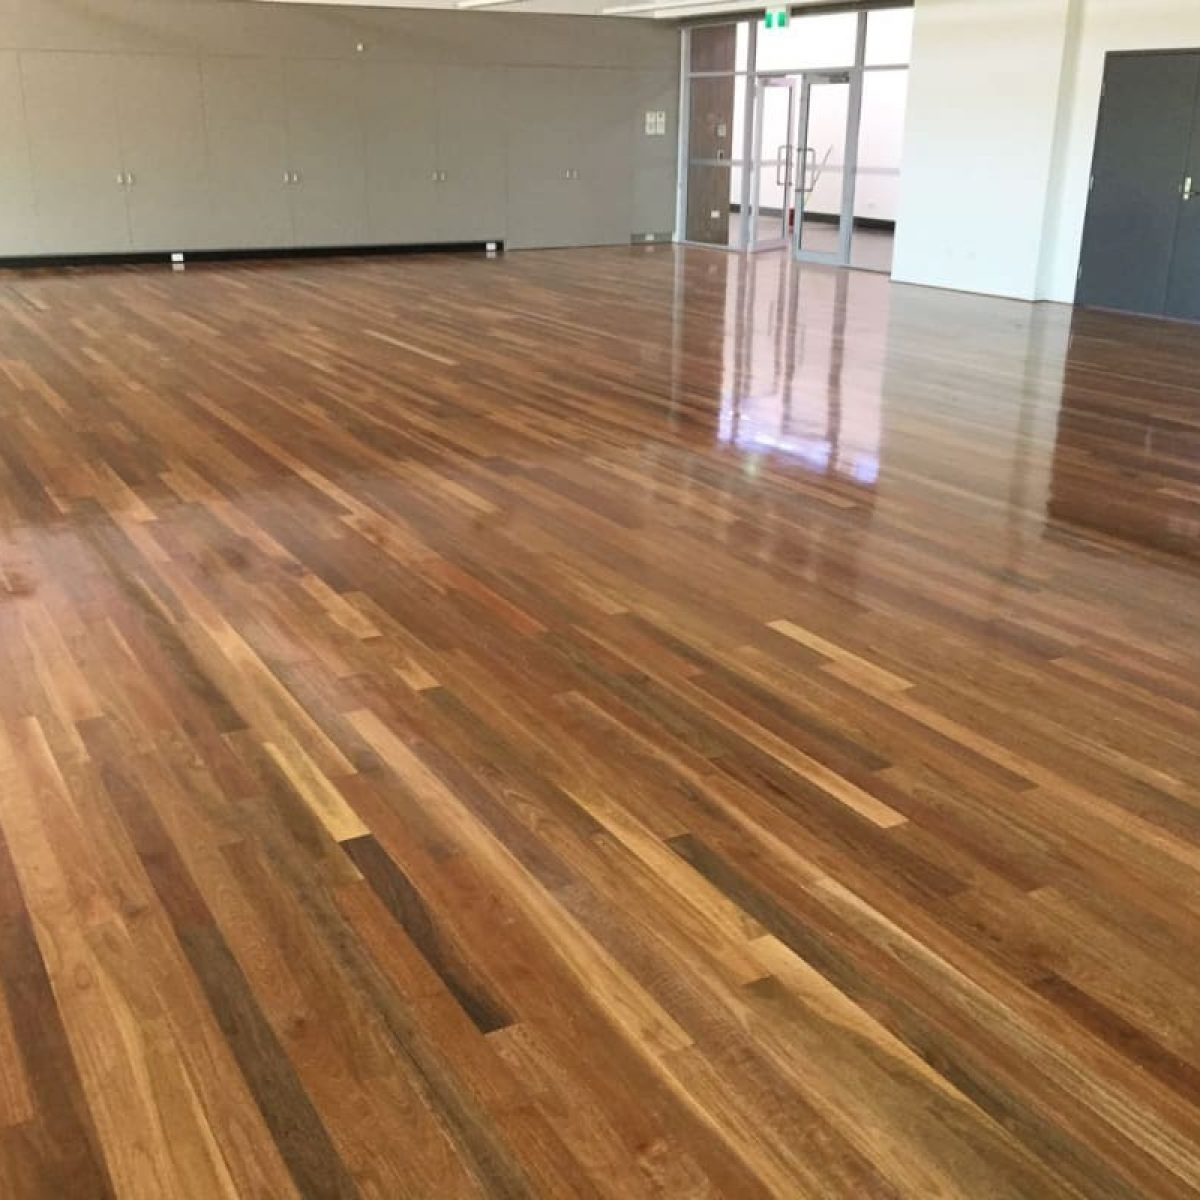 Commercial Timber Flooring Services In Perth Timber Flooring Flooring Timber